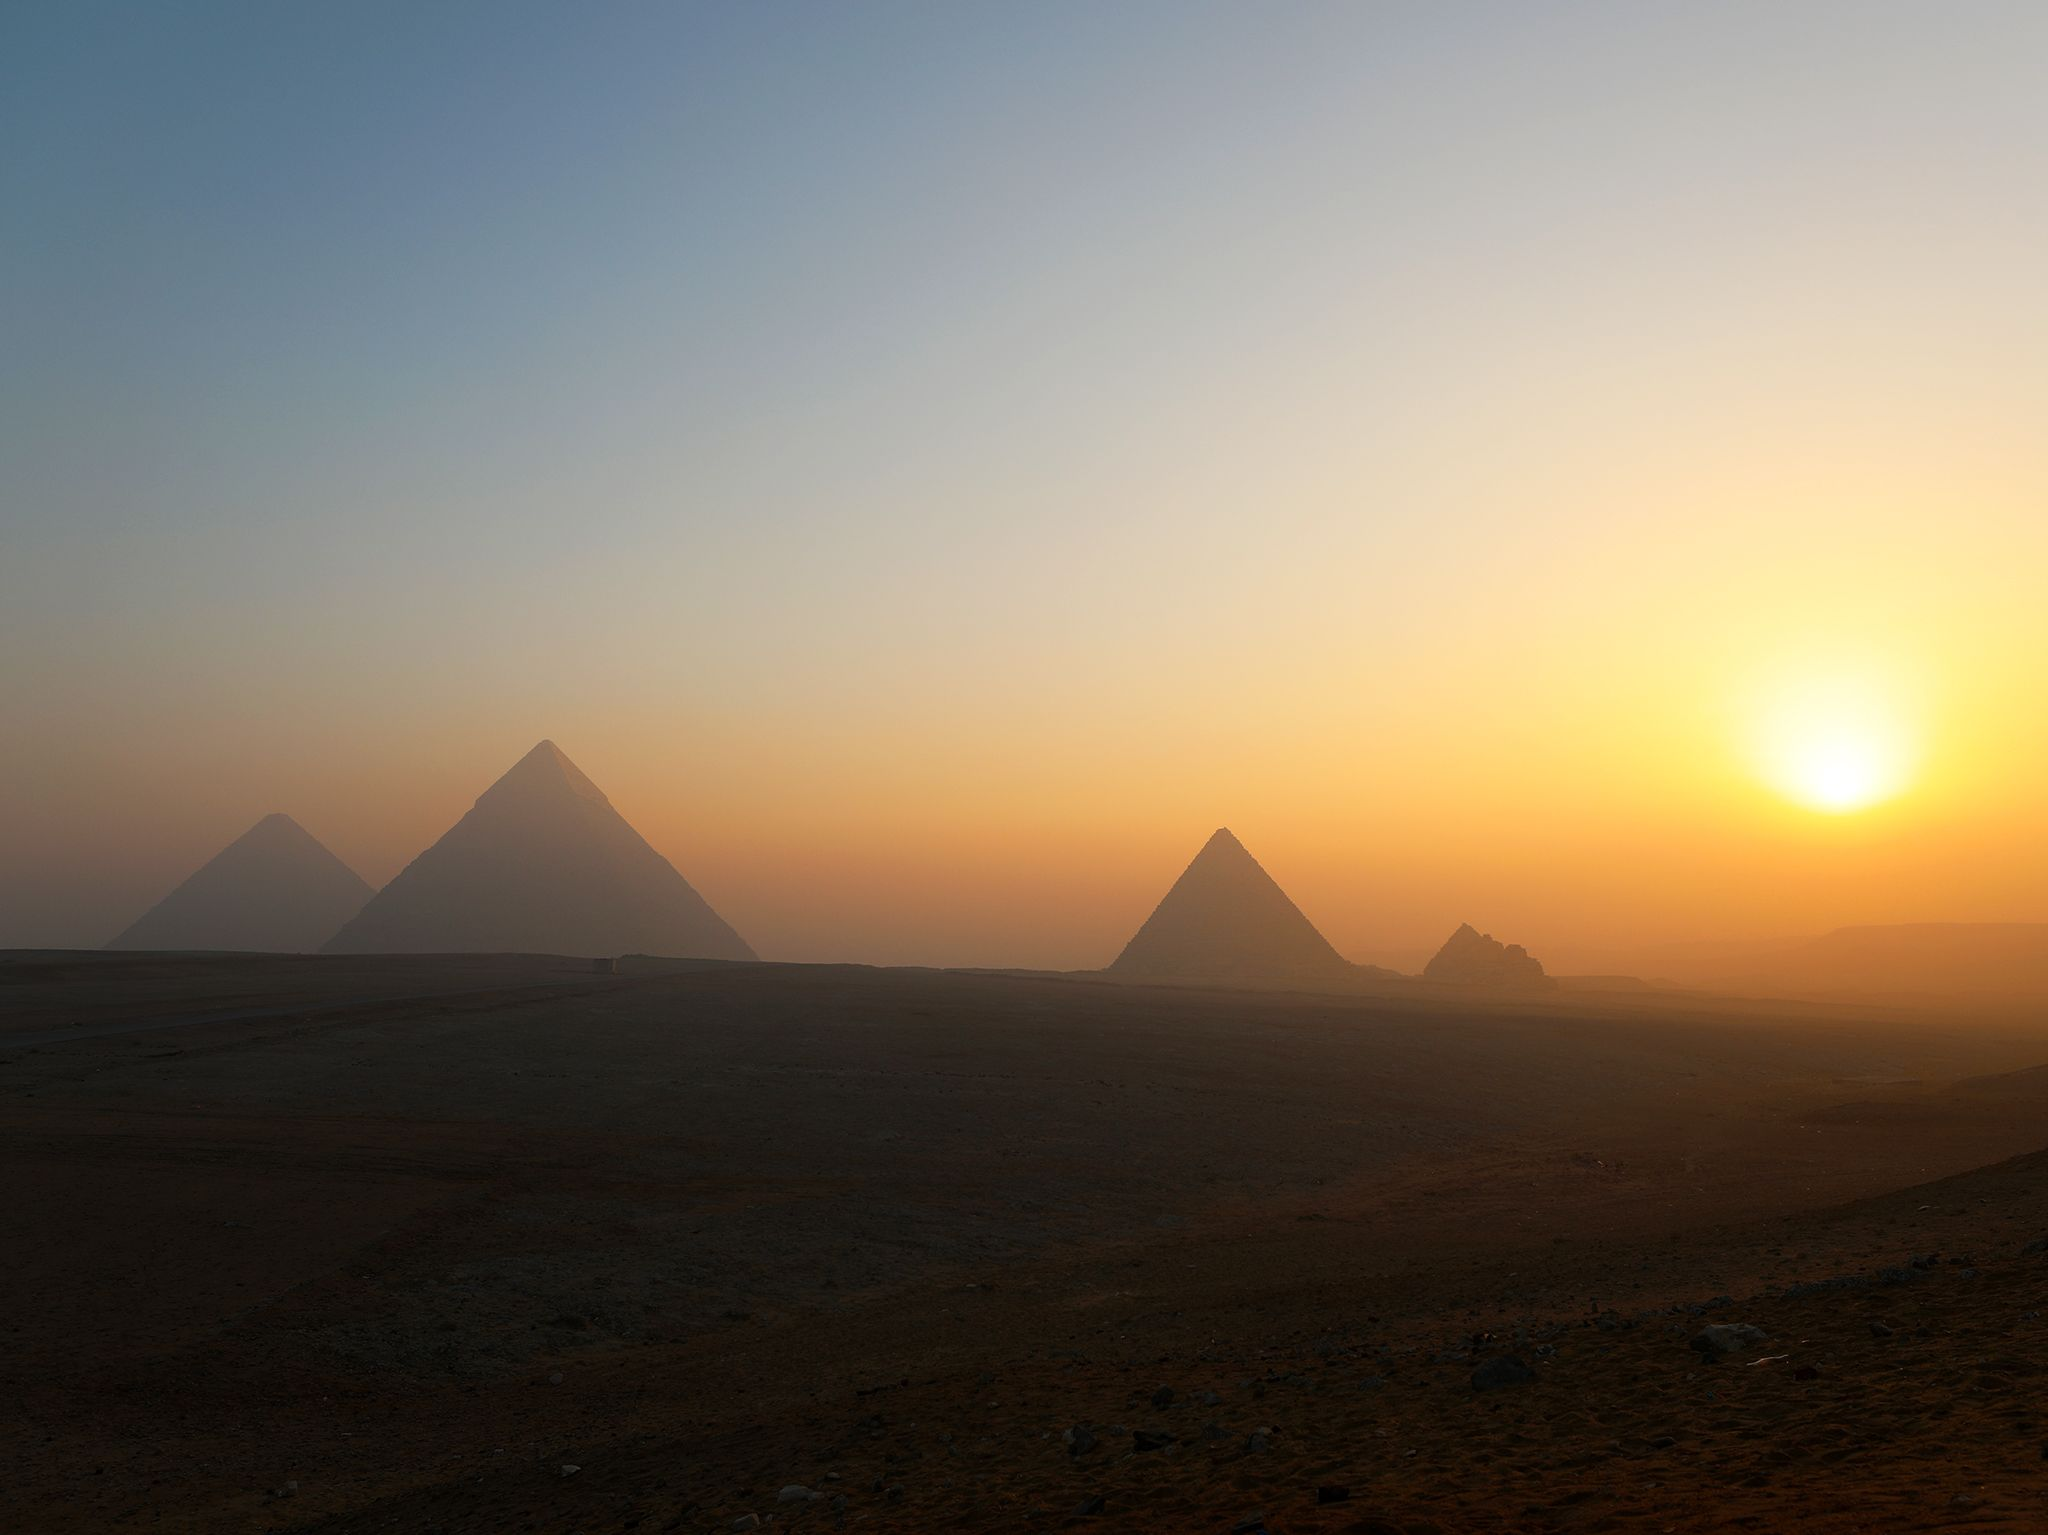 Pyramids off in the distance. This image is from Egypt From Above. [Foto del giorno - aprile 2019]